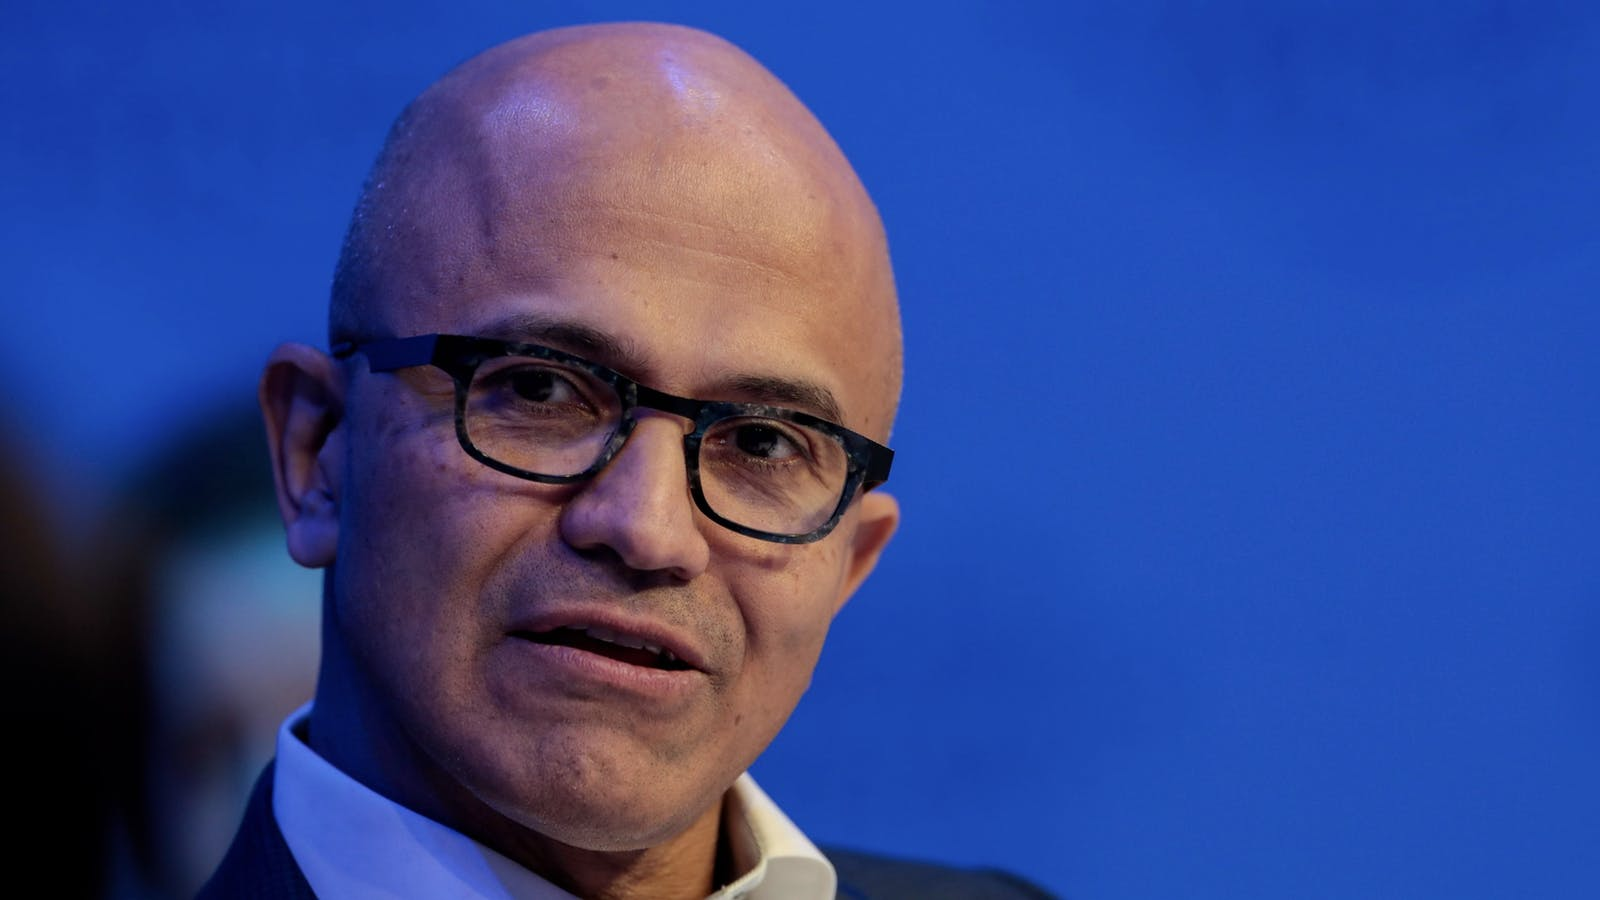 Microsoft CEO Satya Nadella. Photo by Bloomberg